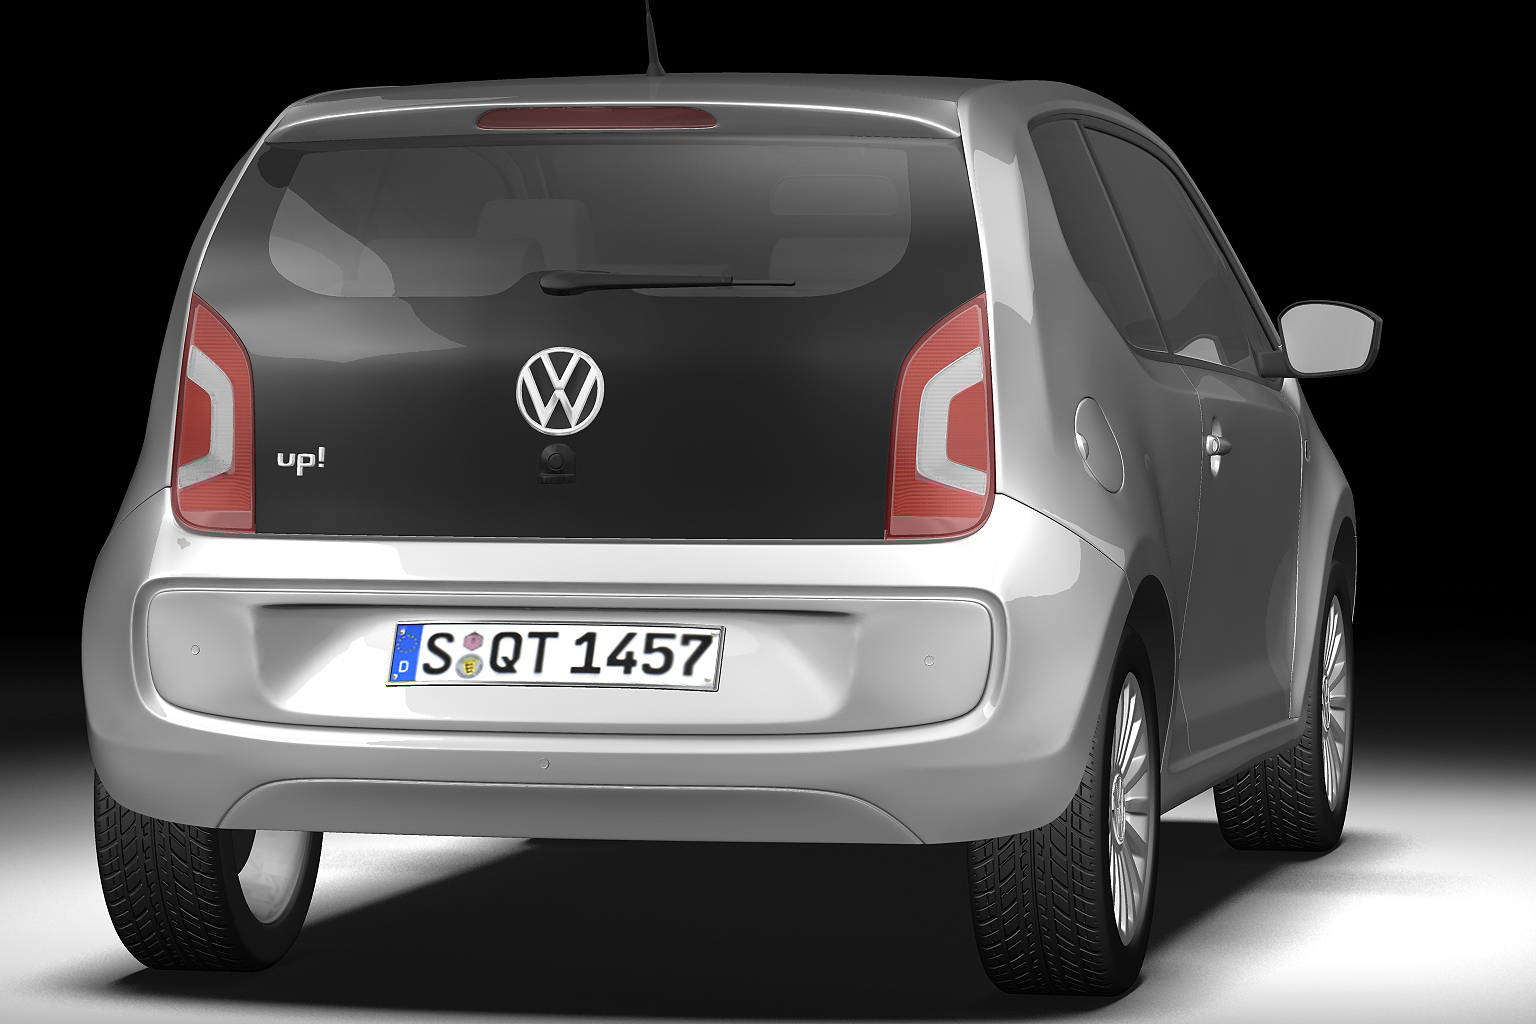 2013 volkswagen up 3d model 3ds max fbx c4d lwo hrc xsi obj 136207